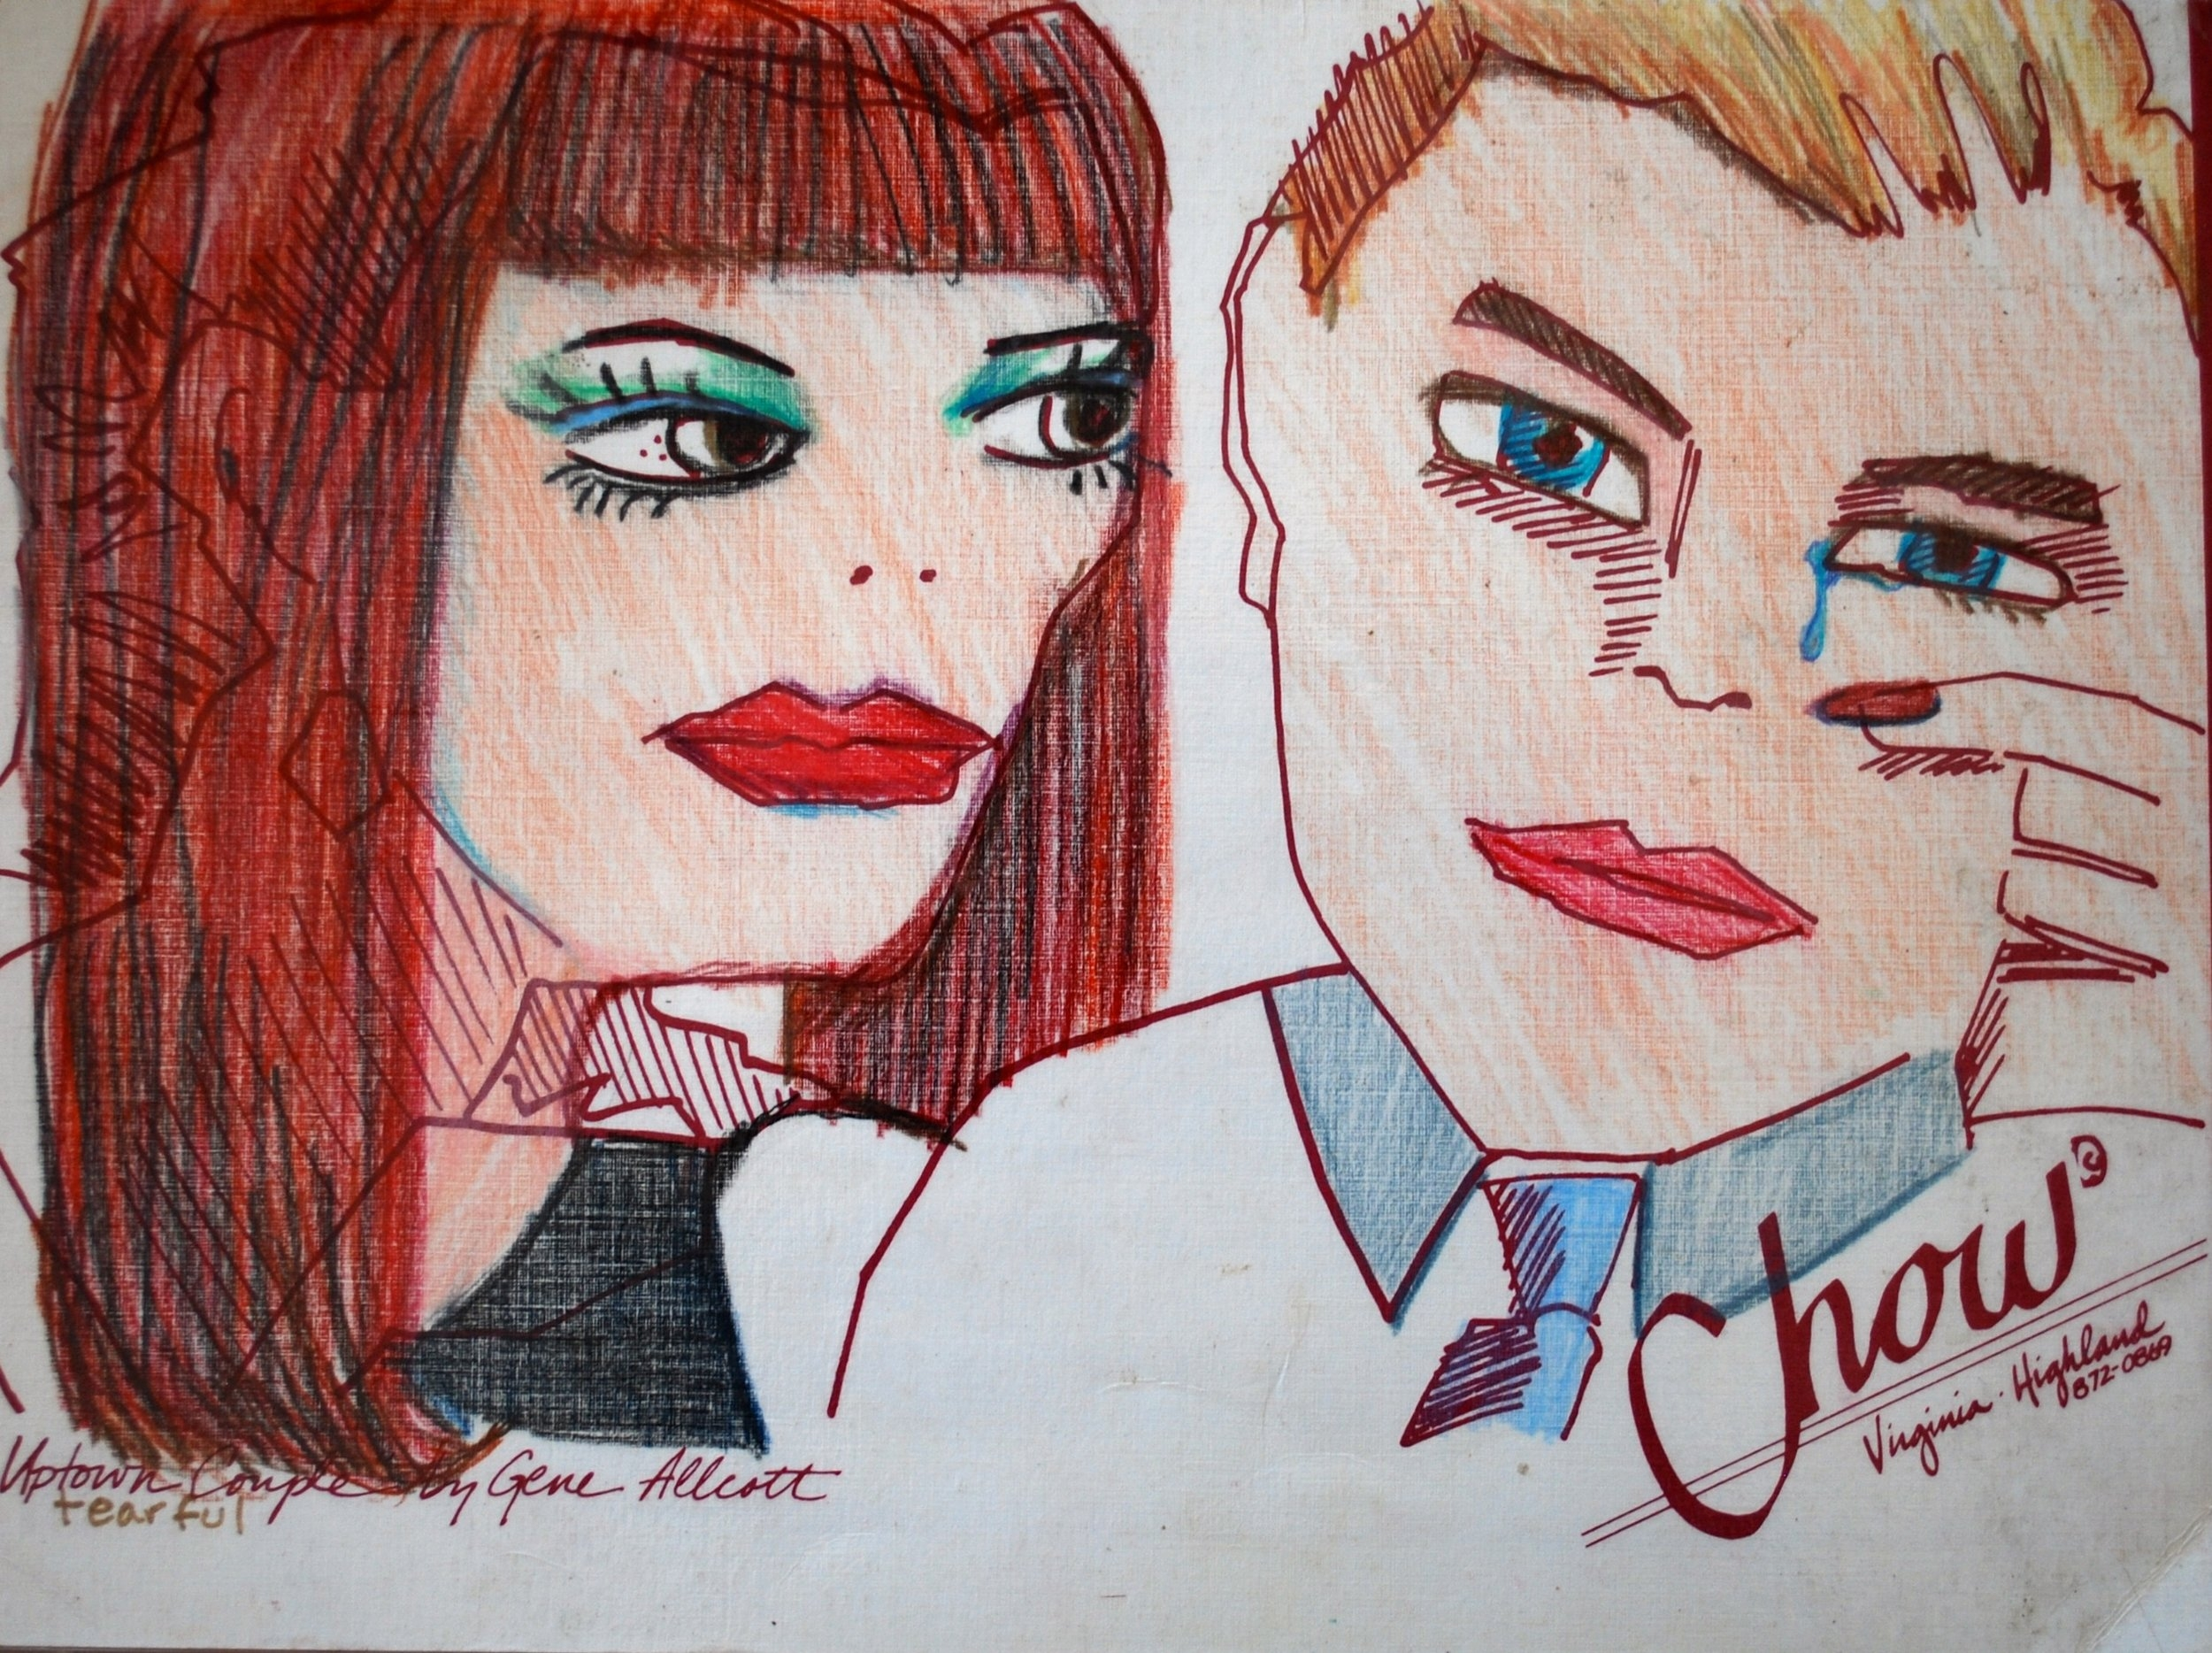 Uptown Couple, a menu hand colored by Gene for Chow's Restaurant